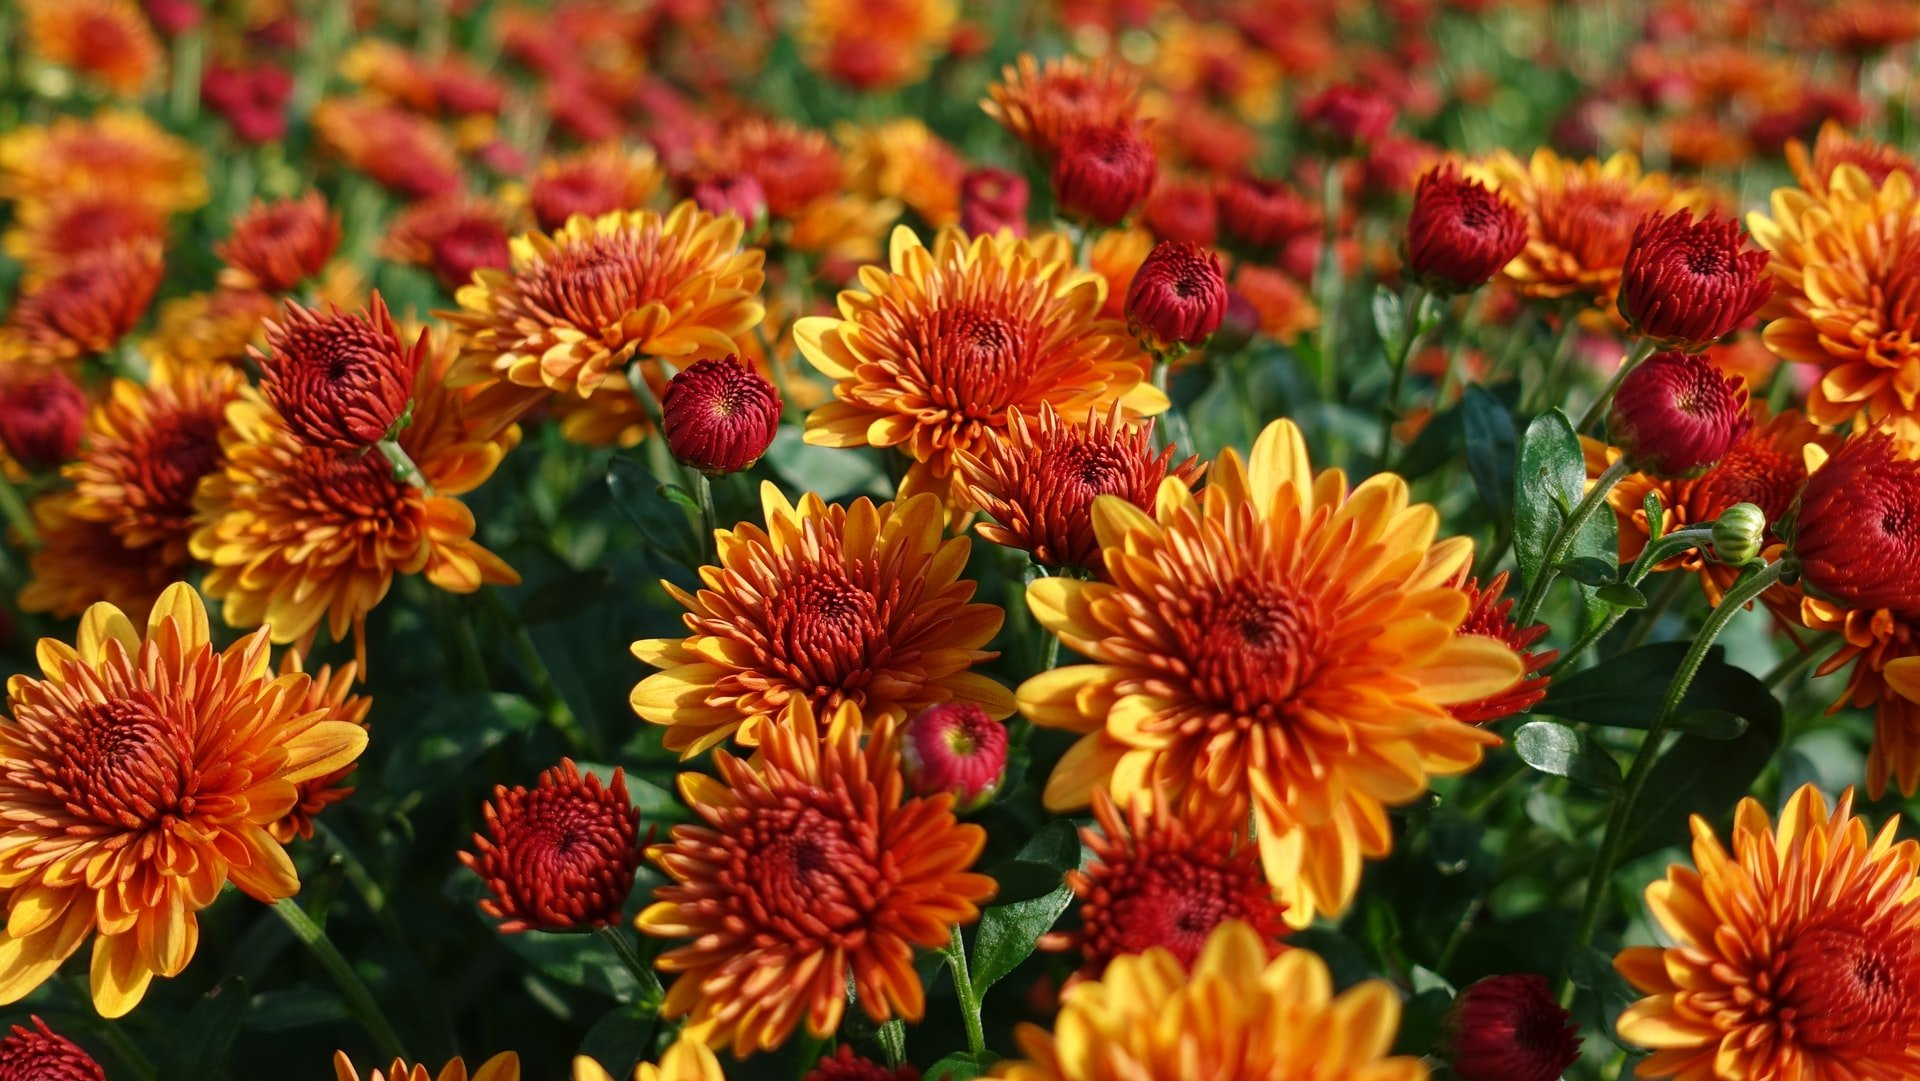 Fall Mums - photograph by Patrick Donnelly